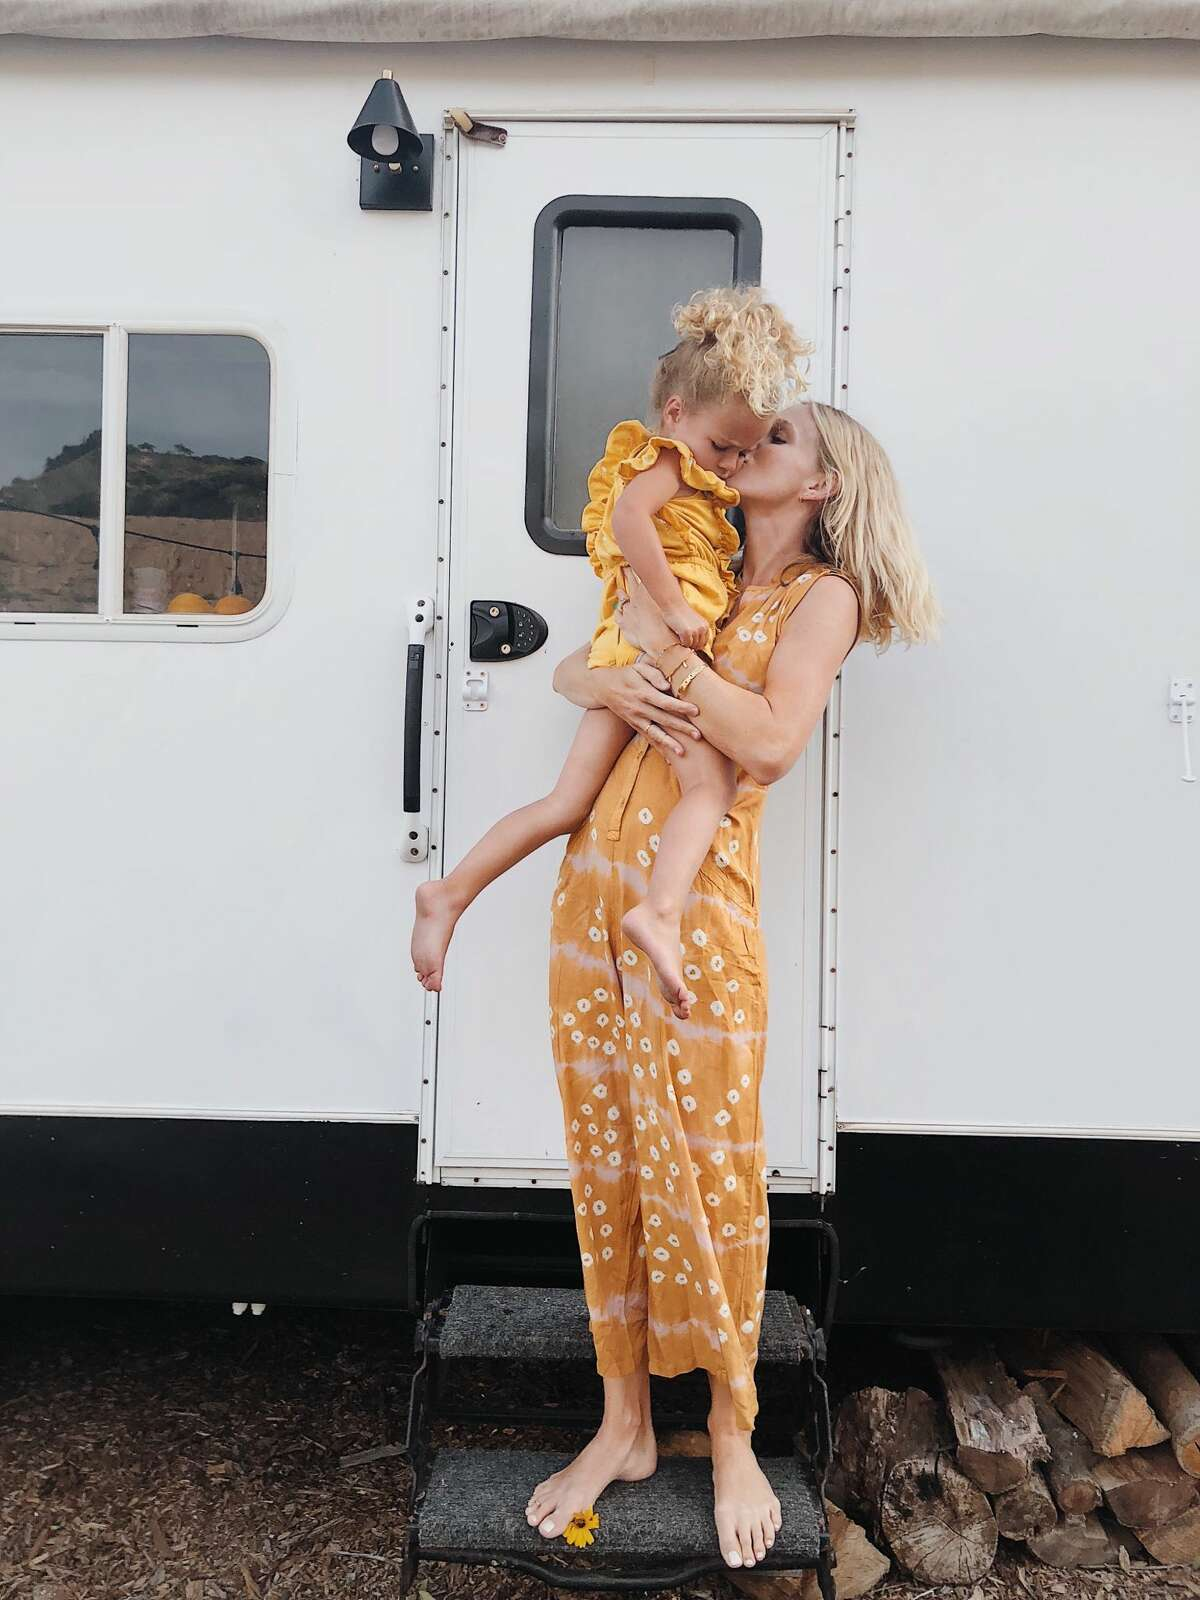 A California family of five sold their five-bedroom home to buy a 2.2-acre piece of rural land in Ventura County. To save money to build their dream home on their land, they're living in a 150-square-foot fully renovated trailer. See photos of their groovy living situation on Instagram at @arrowsandbow.